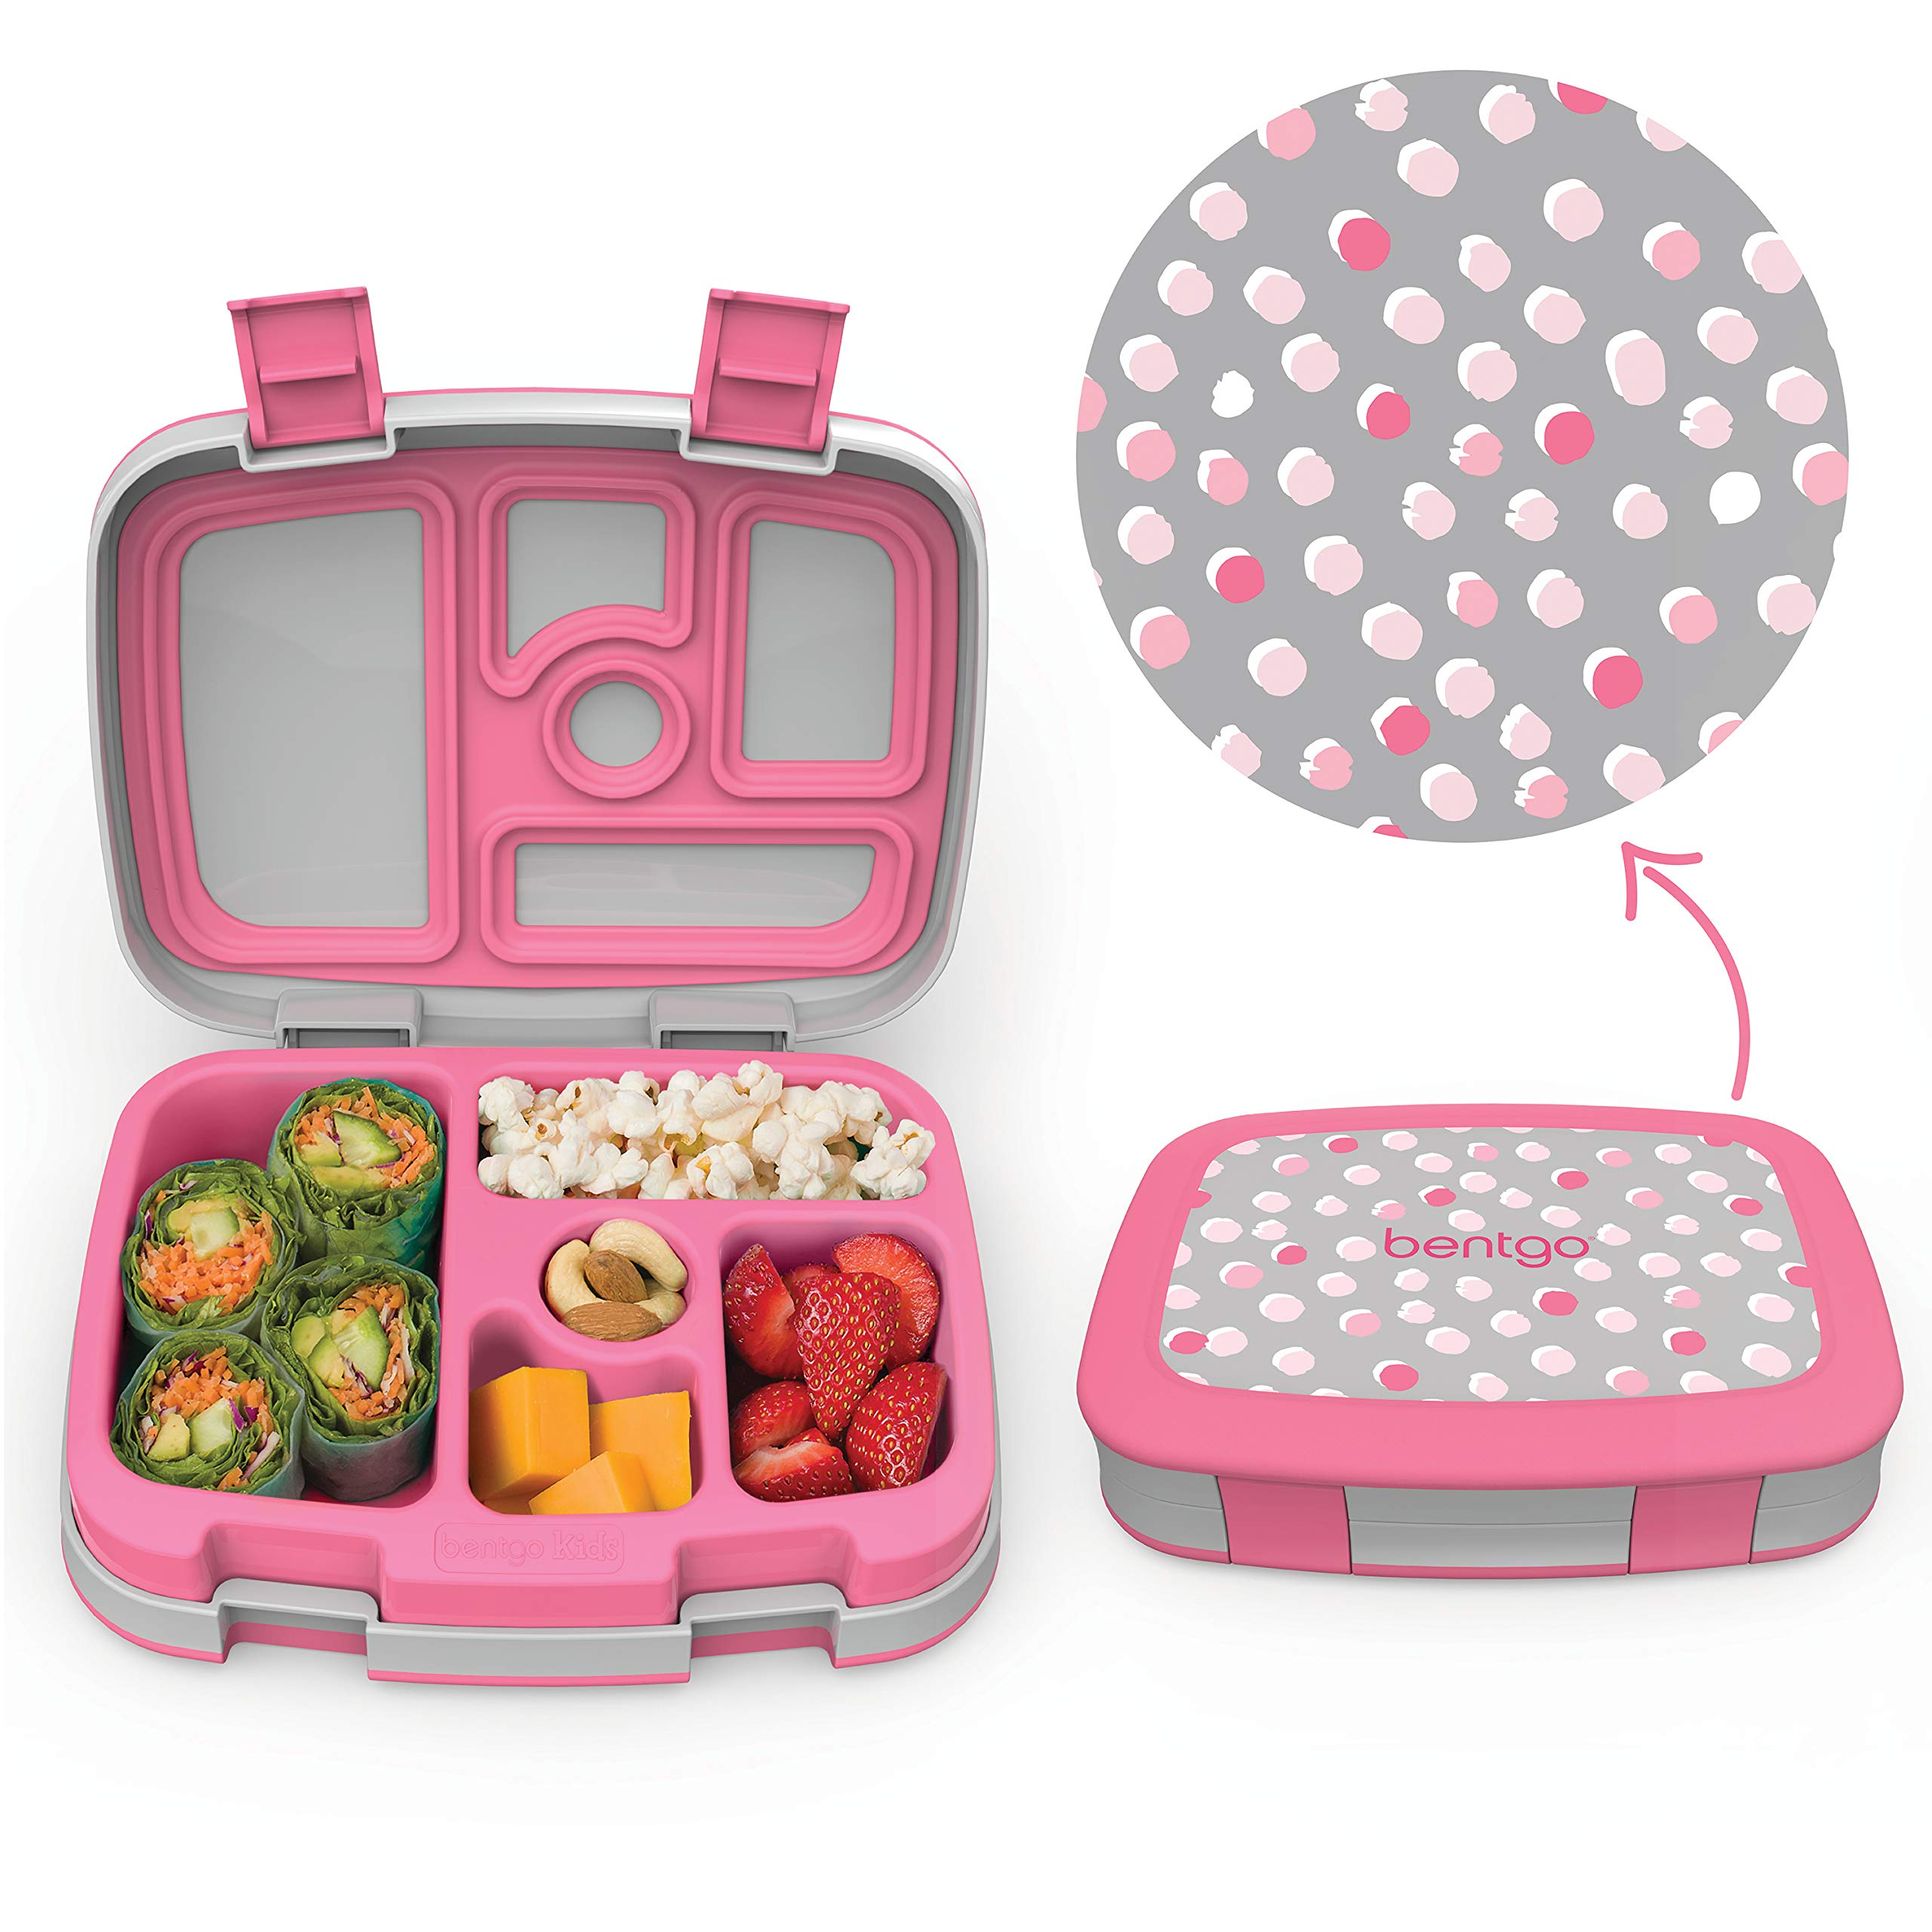 Bentgo Kids Prints (Pink Dots) - Leak-Proof, 5-Compartment Bento-Style Kids Lunch Box - Ideal Portion Sizes for Ages 3 to 7 - BPA-Free and Food-Safe Materials by Bentgo